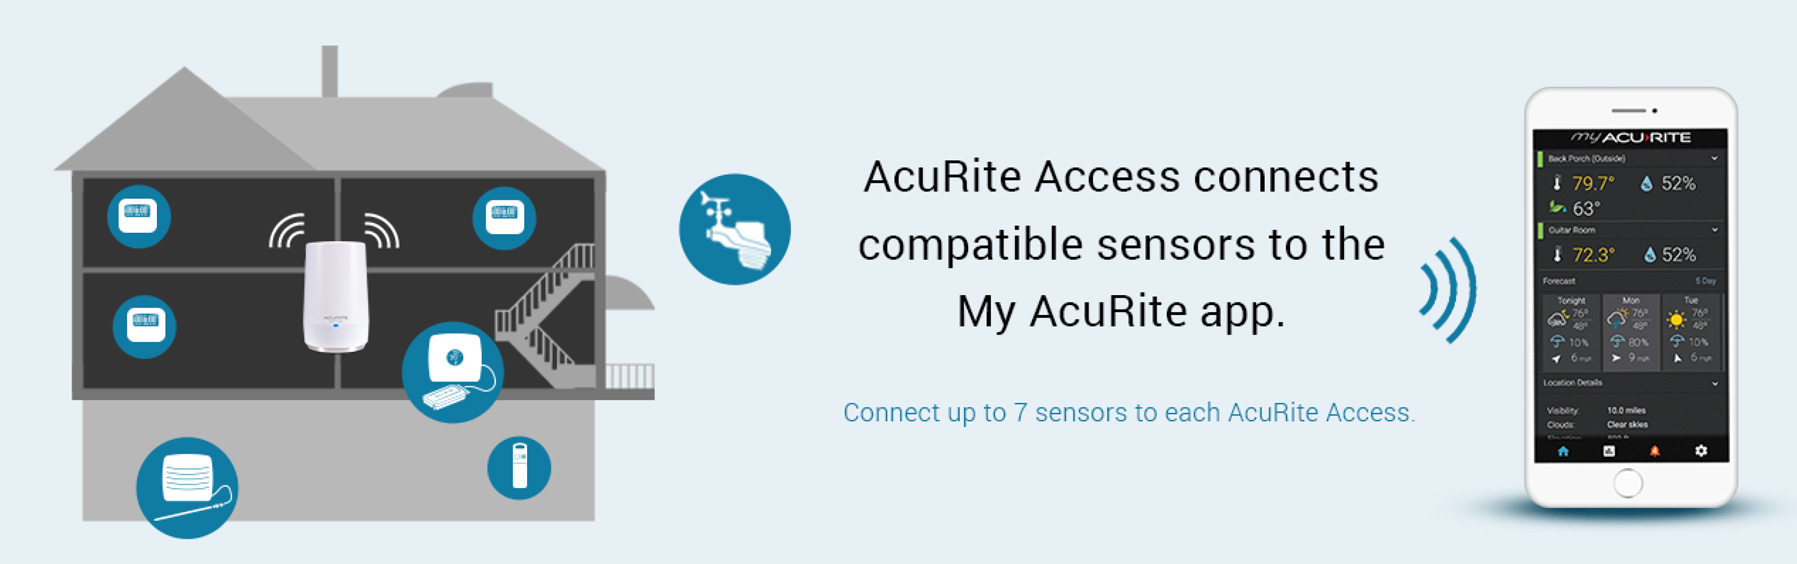 AcuRite Atlas in your home